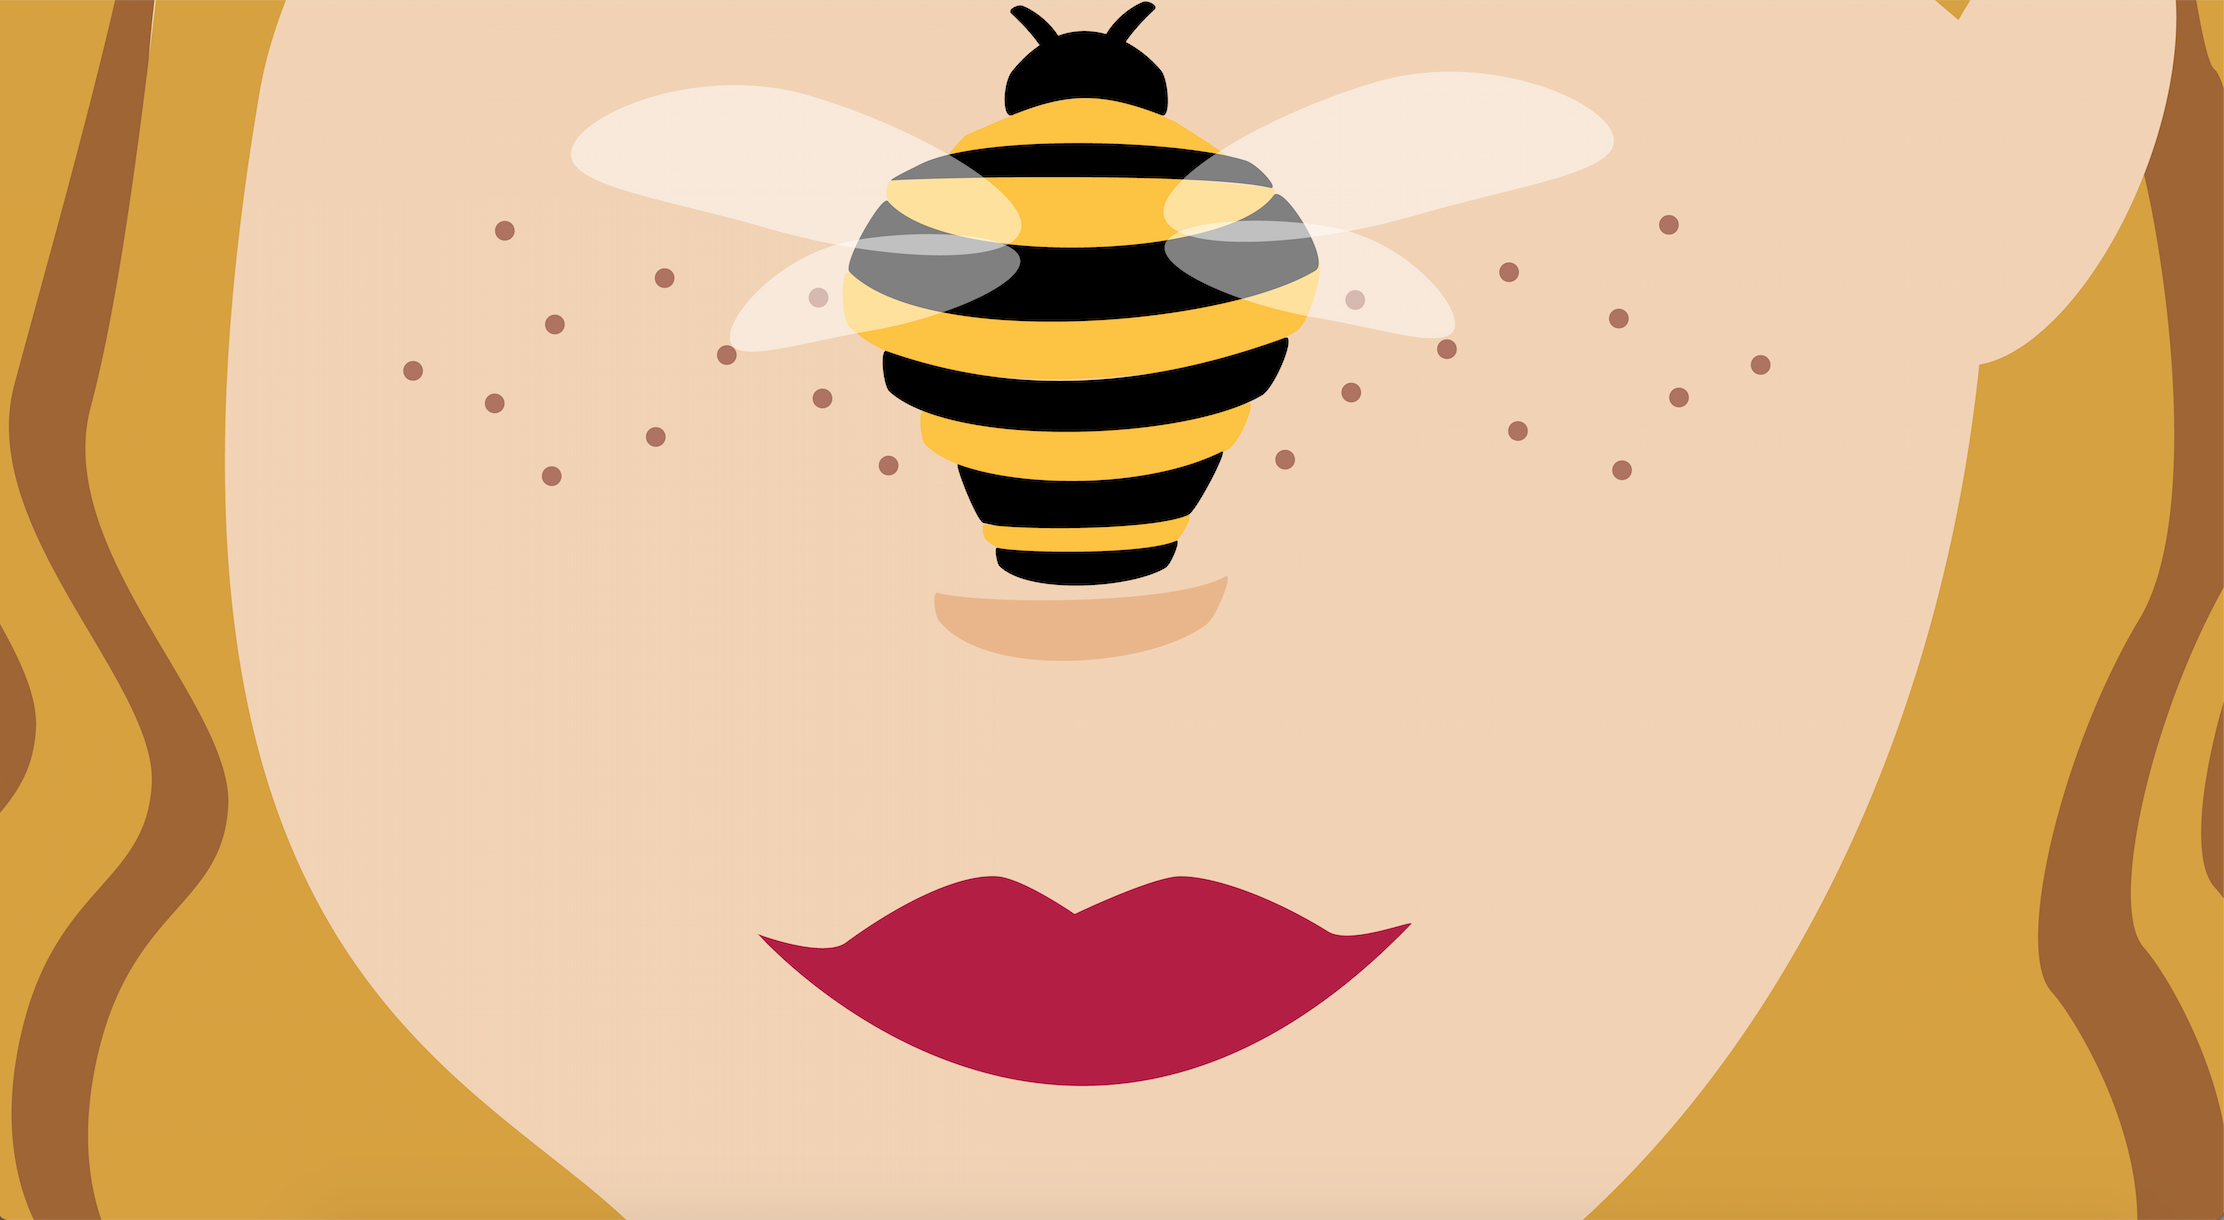 Eva B. logo illustration face with freckles, red lips and bee on nose